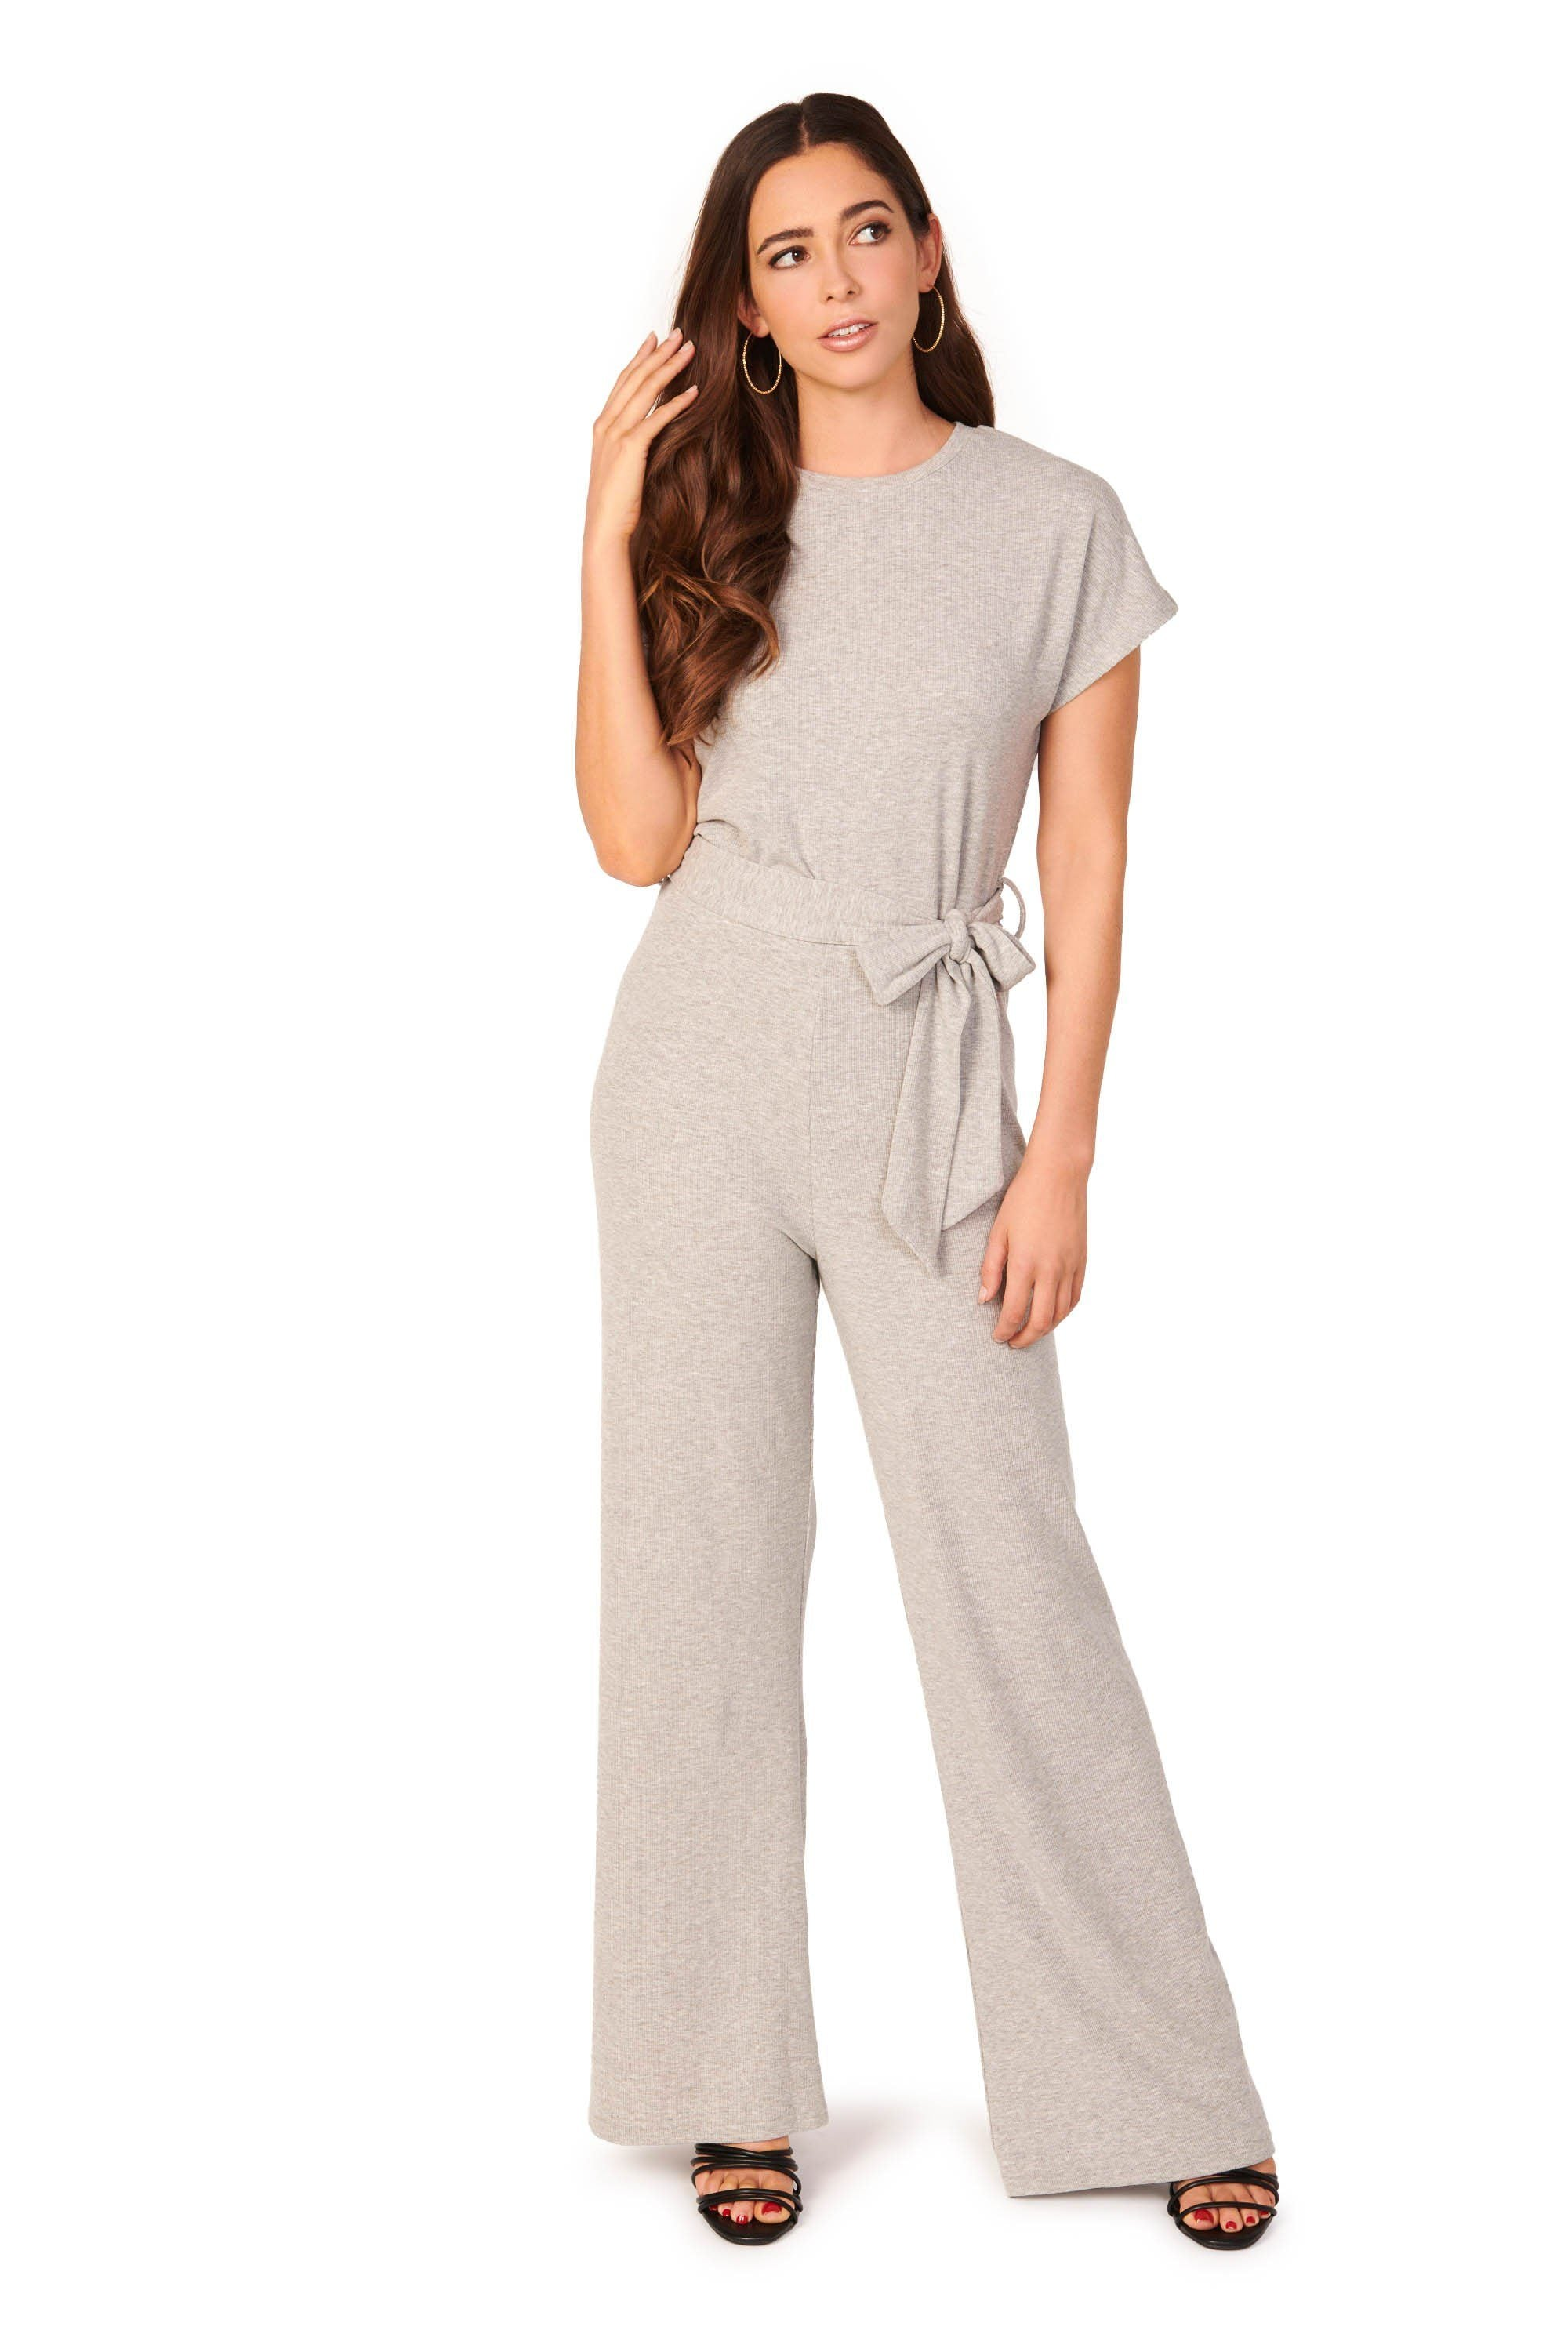 Relaxed Knit Grey Jumpsuit Rompers & Jumpers HYPEACH BOUTIQUE